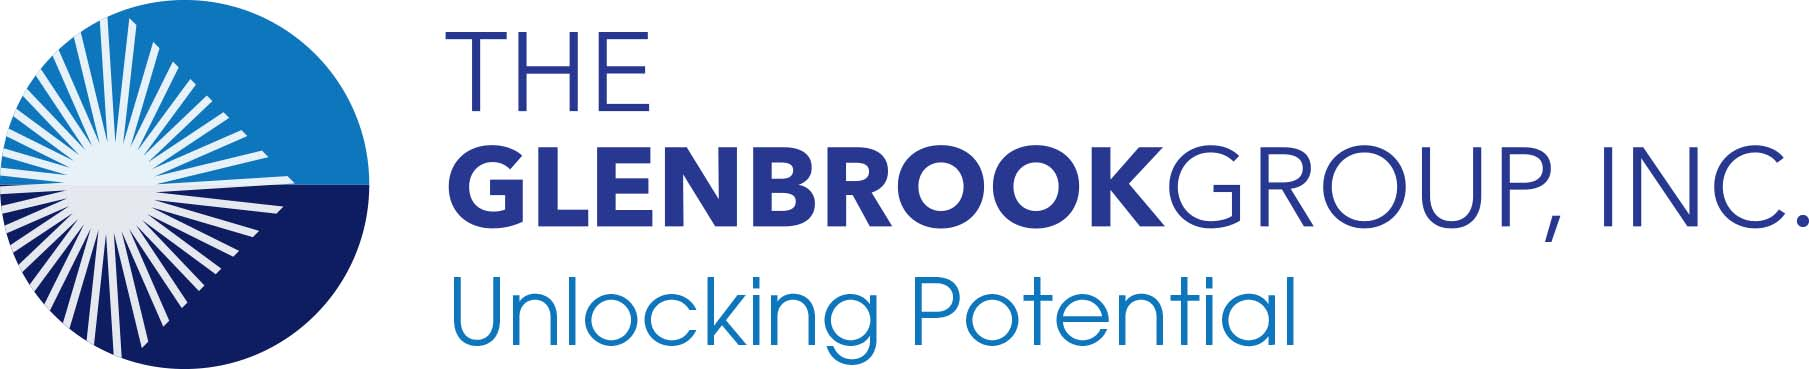 The Glenbrook Group Inc.